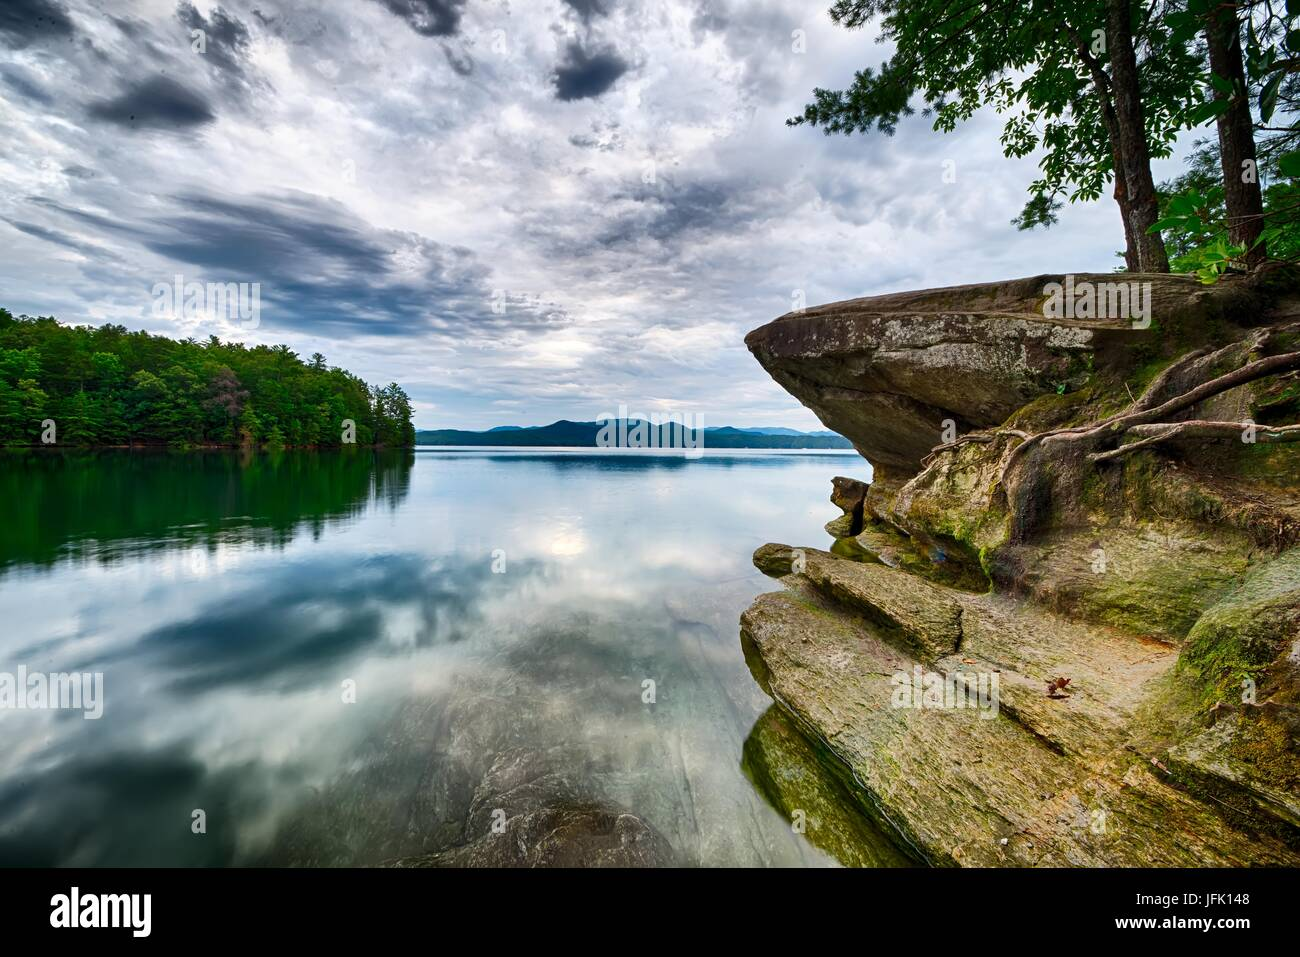 beautiful landscape scenes at lake jocassee south carolina - Stock Image